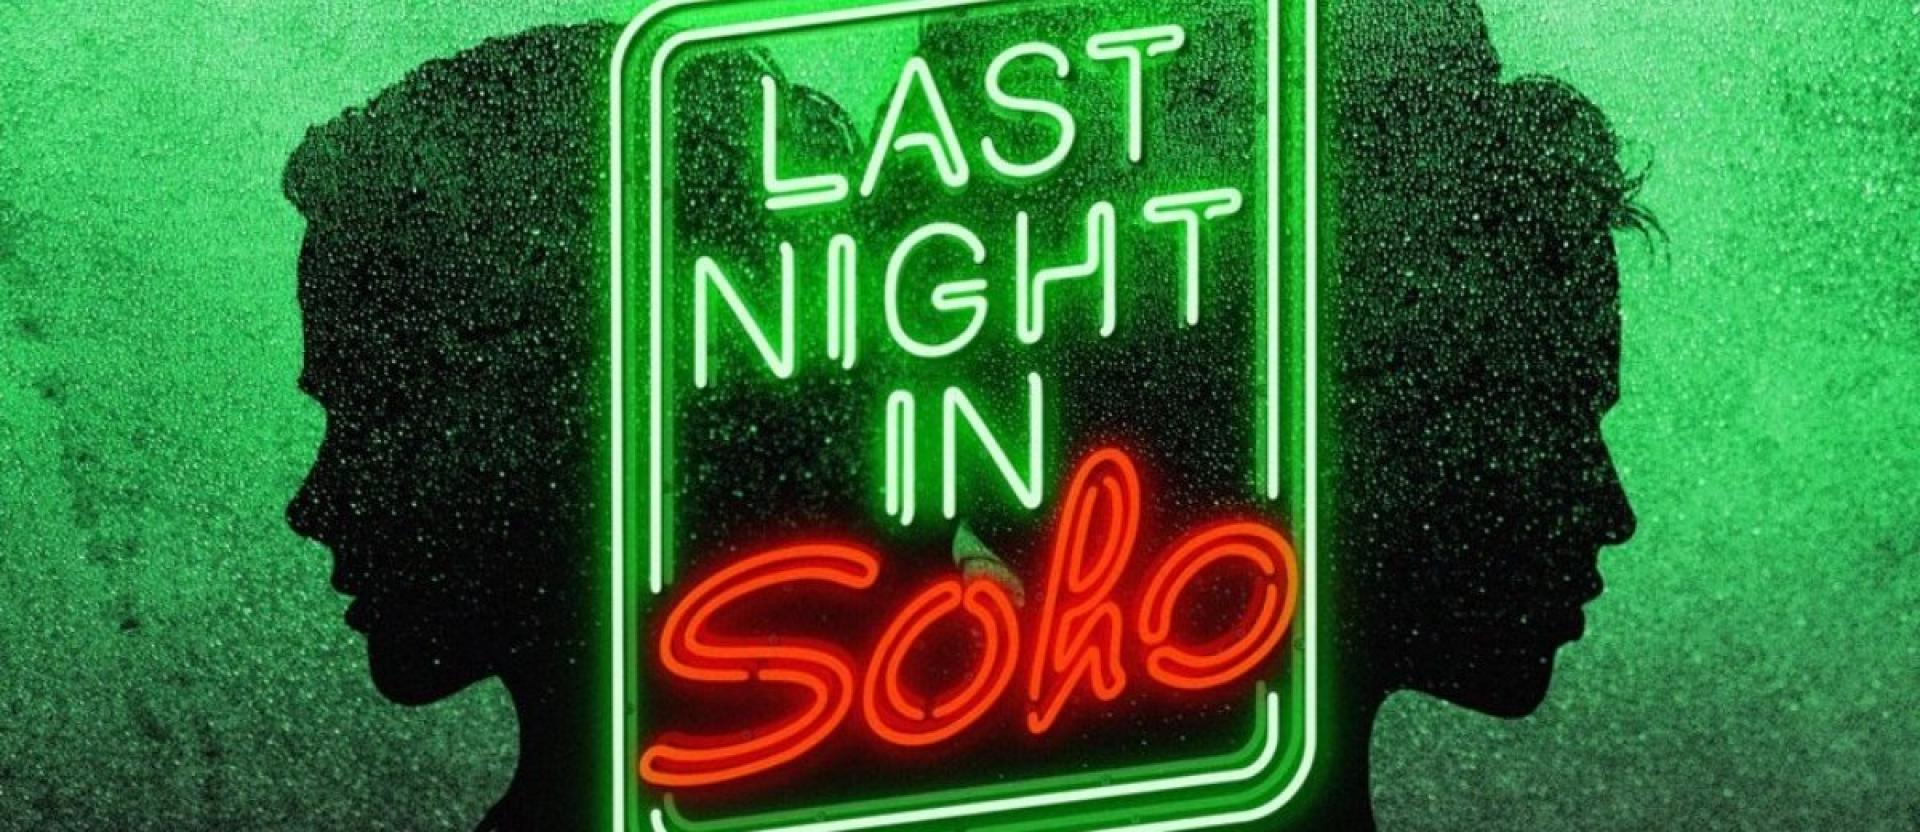 last_night_in_soho_premier